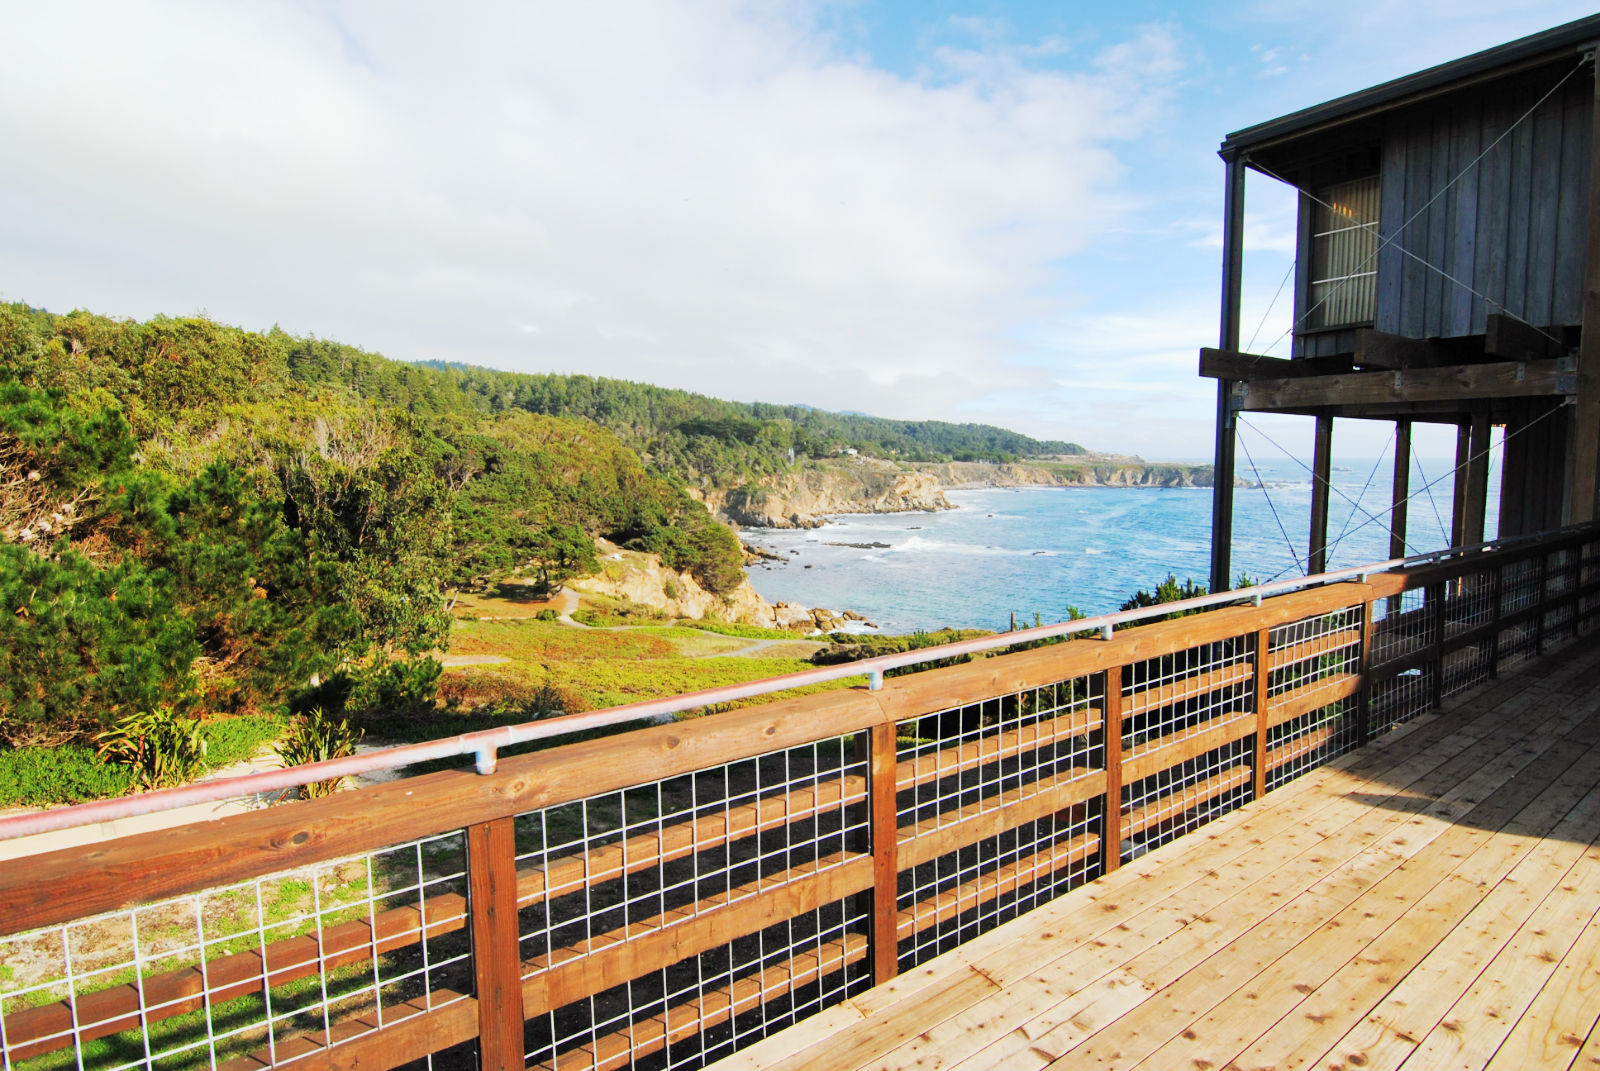 View from a deck at Timber Cove Inn